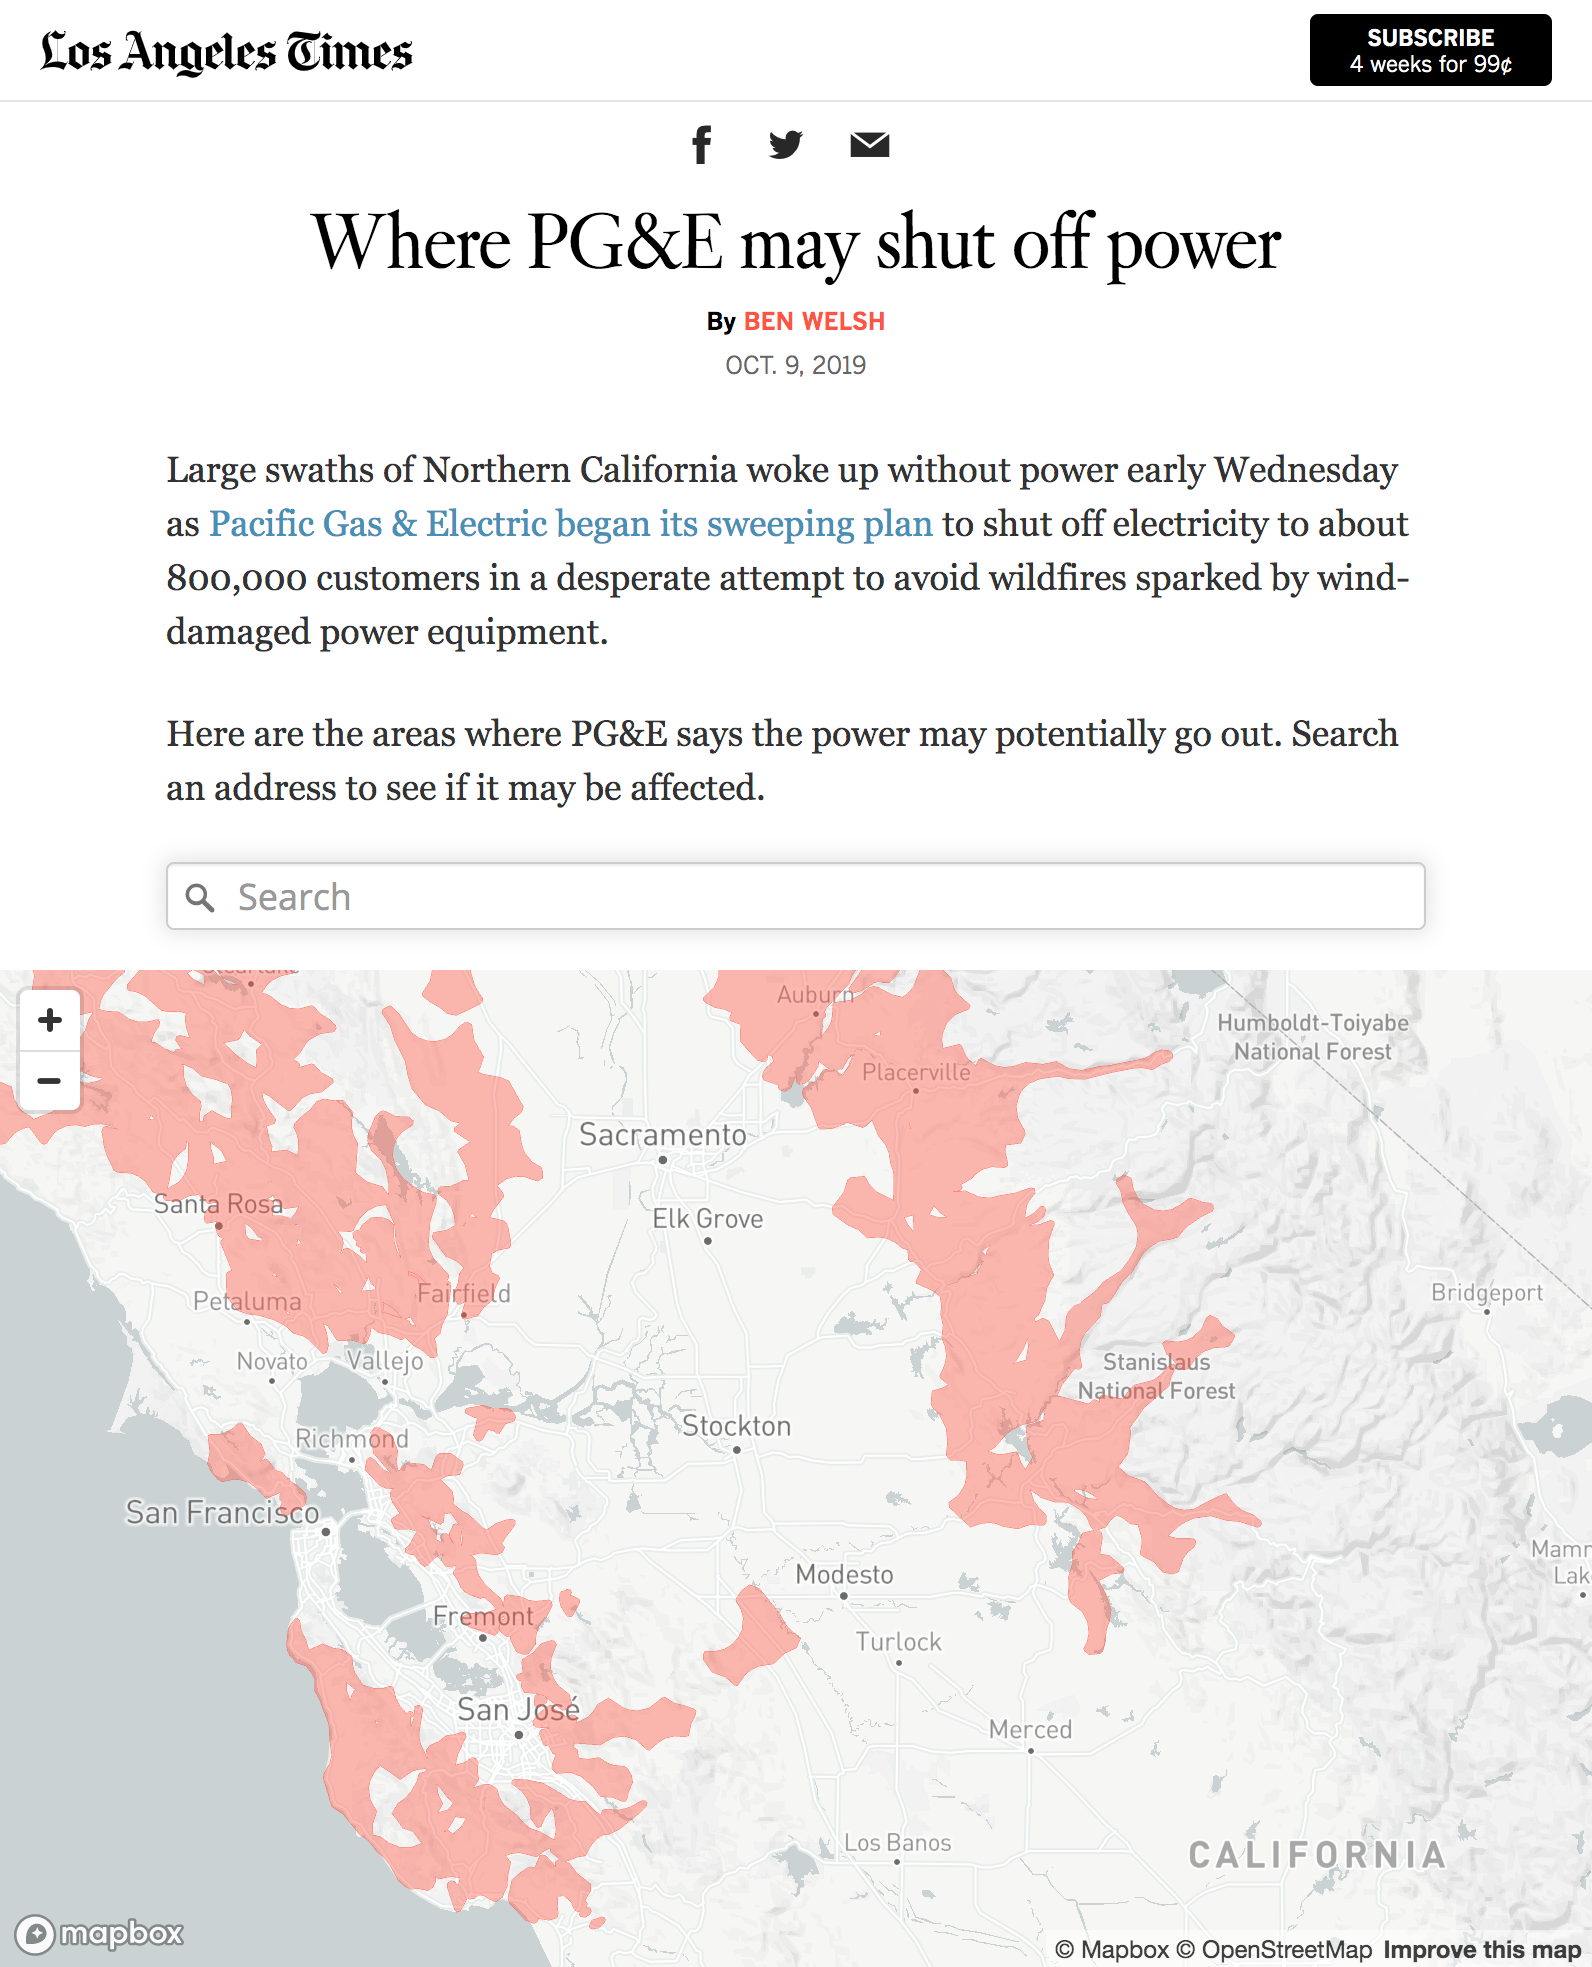 California power outages mapped by the L.A. Times - Points ... on north beach california map, riverside california map, sacramento california map, south central los angeles map, mn california map, all of california cities map, california capital map, gulf coast texas-louisiana map, brea california map, california california map, st. helena california map, chicago illinois map, alcatraz island california map, allendale california map, mc california map, los angeles and surrounding areas map, california los angeles metro map, no california map, los angeles neighborhoods map, nyc california map,